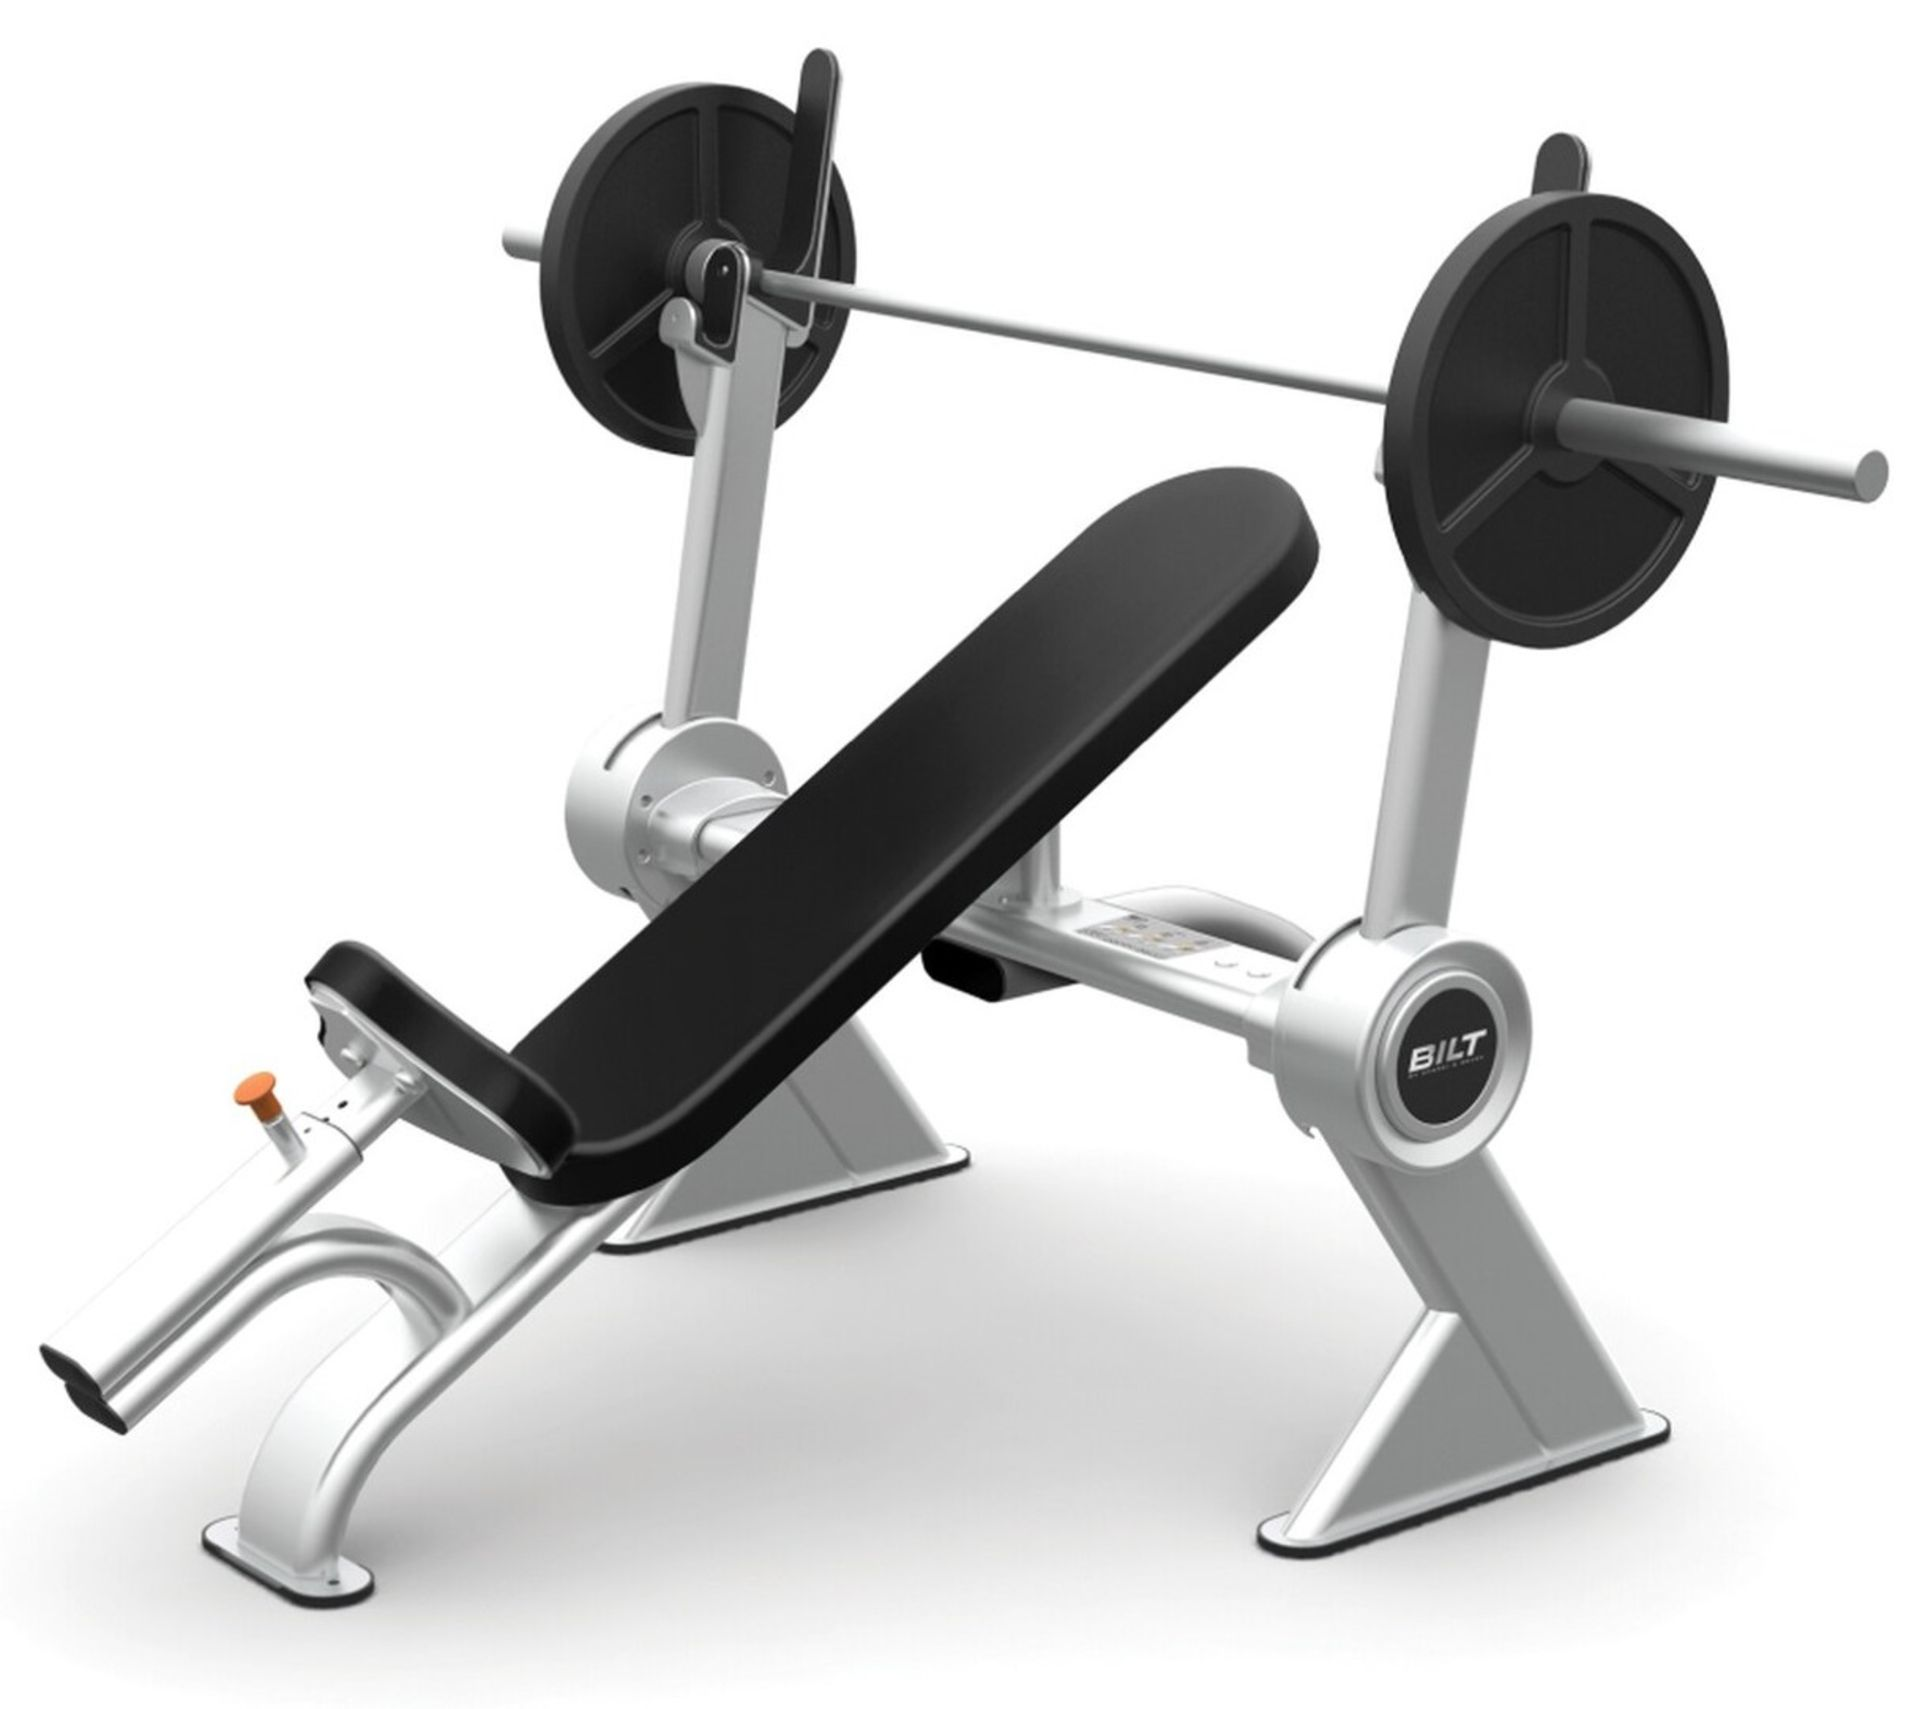 Lot 2326 - 1 x BILT Commercial Gym Incline Bench By Agassi & Reyes - BCCB01 - New / Unused Stock - RRP £1,457